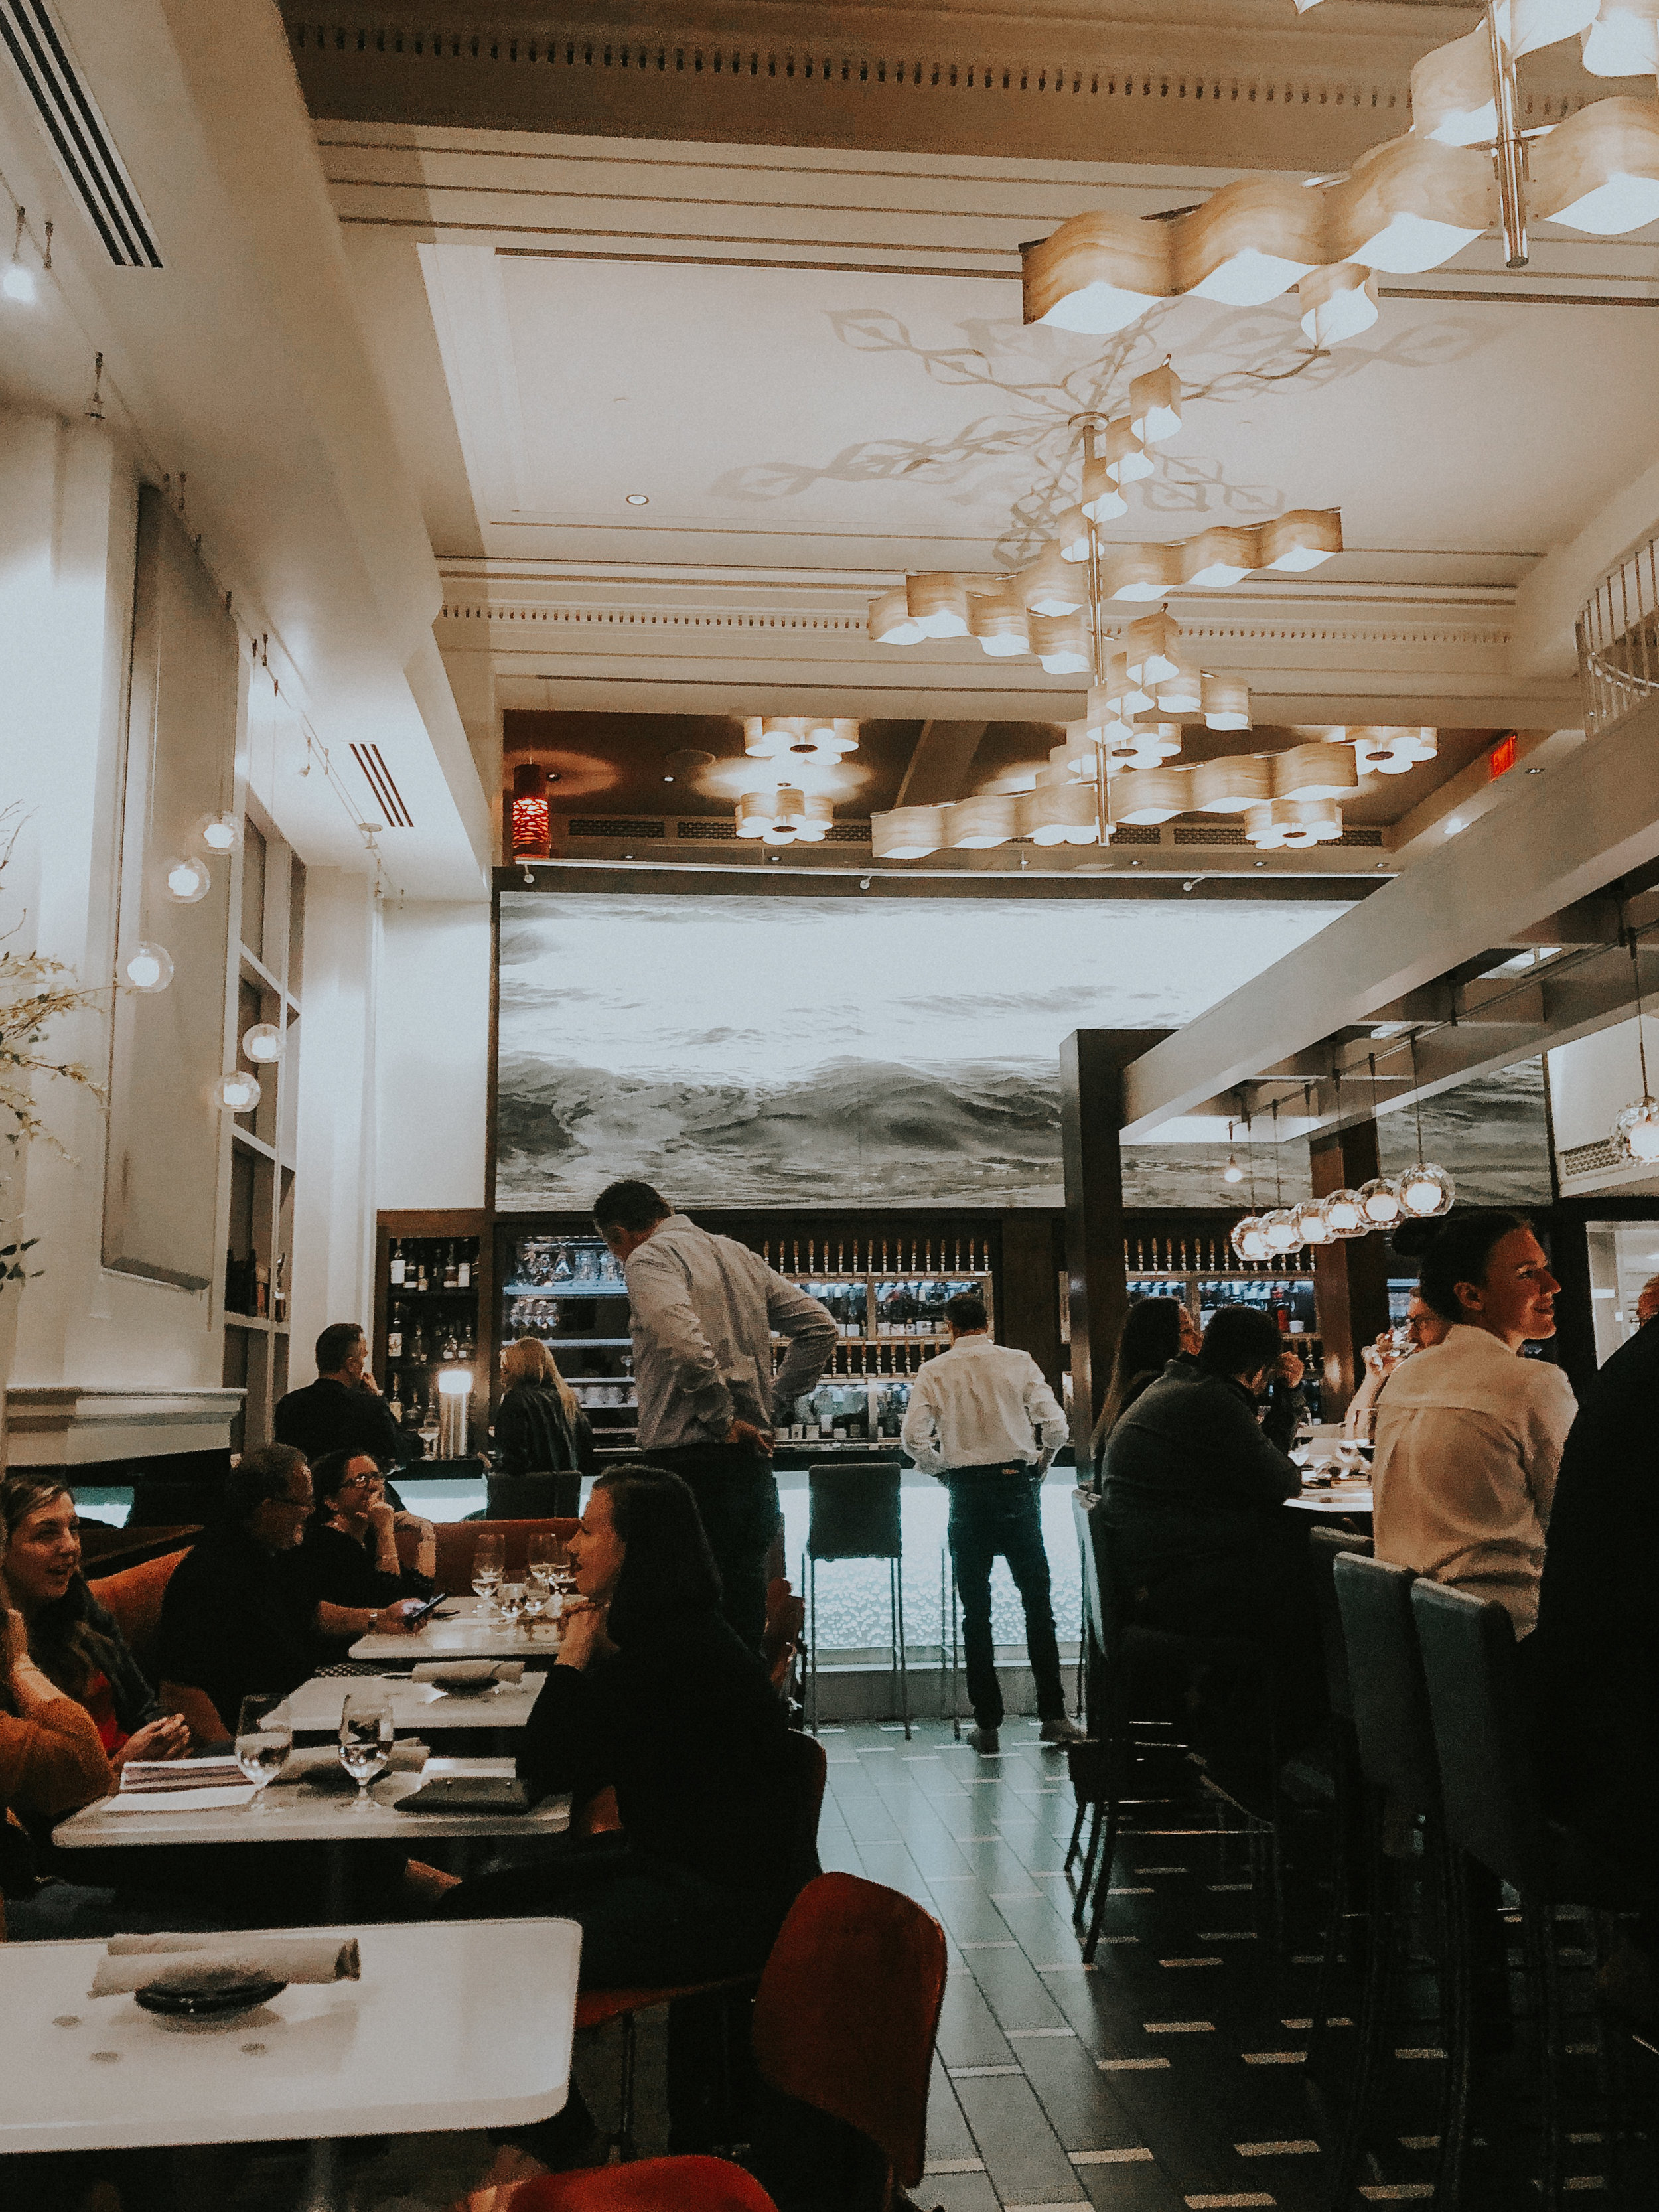 Reserve - 201 Monroe Avenue NWIf wine, great atmosphere, or delicious food are of interest to you, Reserve should be at the top of your list. Neighbors to the iconic Amway Grand Hotel, this is one of the city's treasures.• DON'T MISS OUT ON: Cacio E Pepe pasta, Cheeseburger (pickled onions AND Dutch crunch bun are a 1-2 punch), and their customizable charcuterie boards. • ATMOSPHERE: The winning piece of the first ArtPrize hangs proudly above the bar at Reserve. Open Water No. 24 from a New York based artist Ran Ortner sets the tone for the rest of the space. It's modern but warm, sophisticated but approachable. One of my favorite spots is on their patio which is right on the sidewalk in the heart of town. There's something relaxing about relaxing with some wine while the bustle of the city surrounds you. • TIP: While lunch here is delightful, my suggestion would be to visit at night. Whether you sit inside or outside it's a win. Inside, the piece above the bar is illuminated in a magical way while outside, the lights and sounds of a city at play surrounds you.